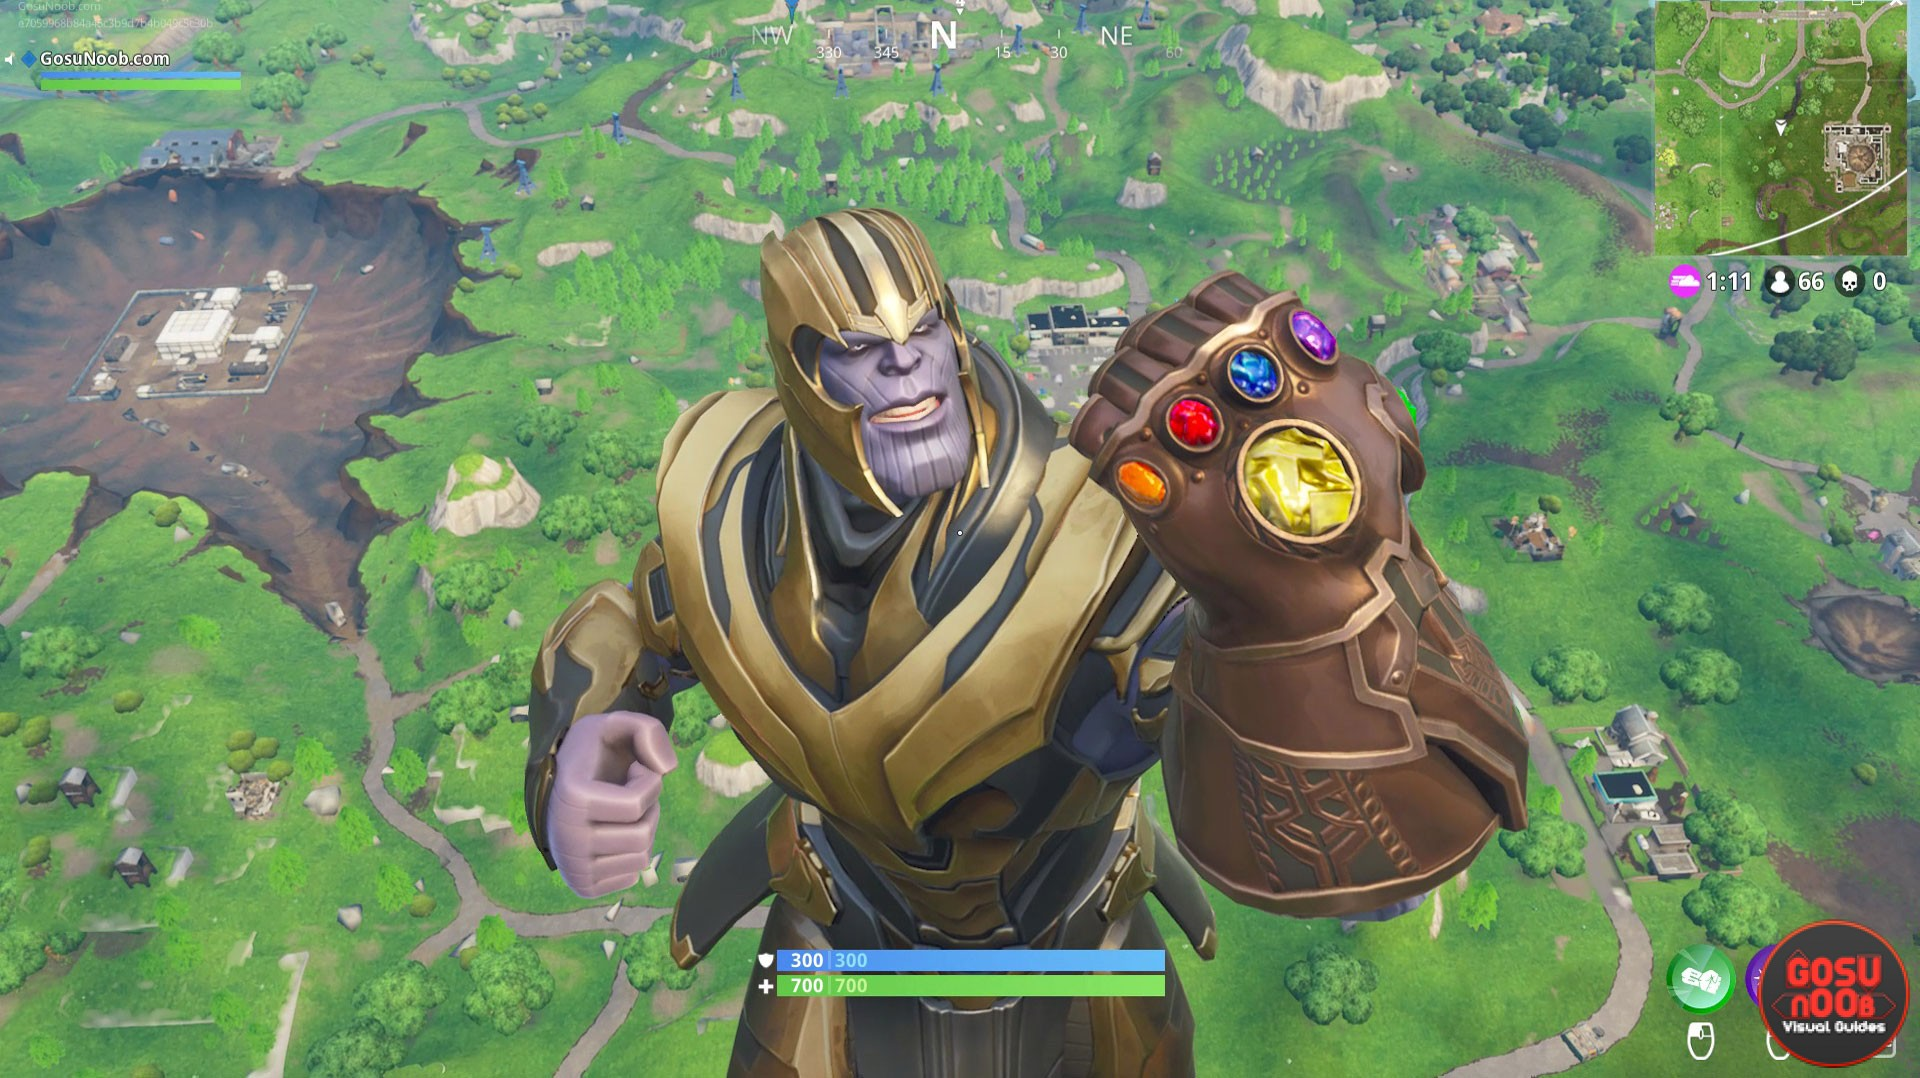 Play As Thanos In Fortnite Tips On How To Easily Capture